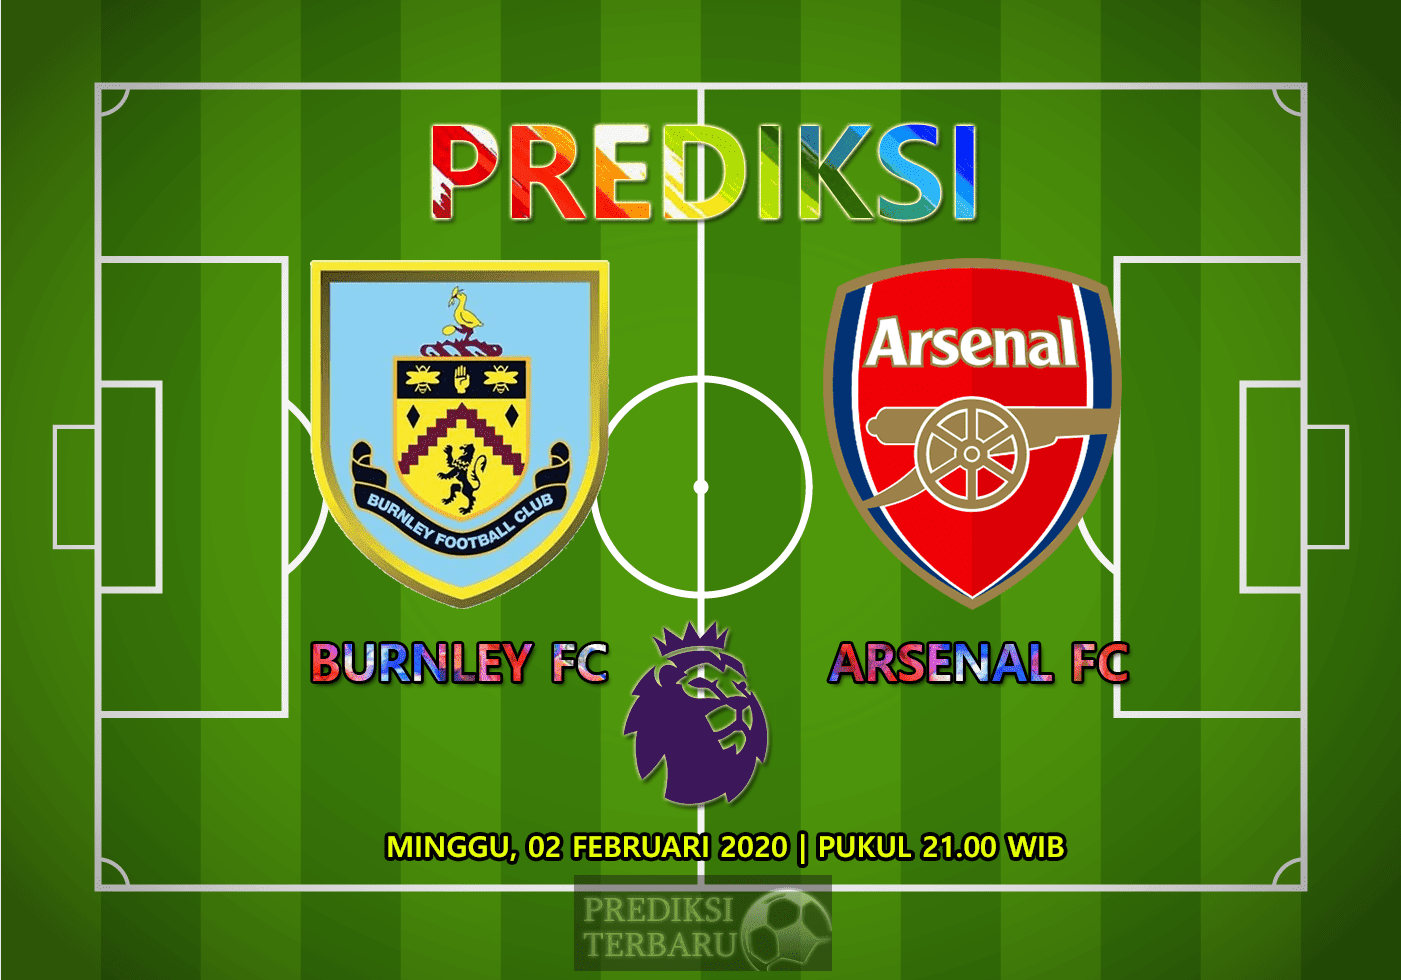 Prediksi Burnley Vs Arsenal 02 Februari